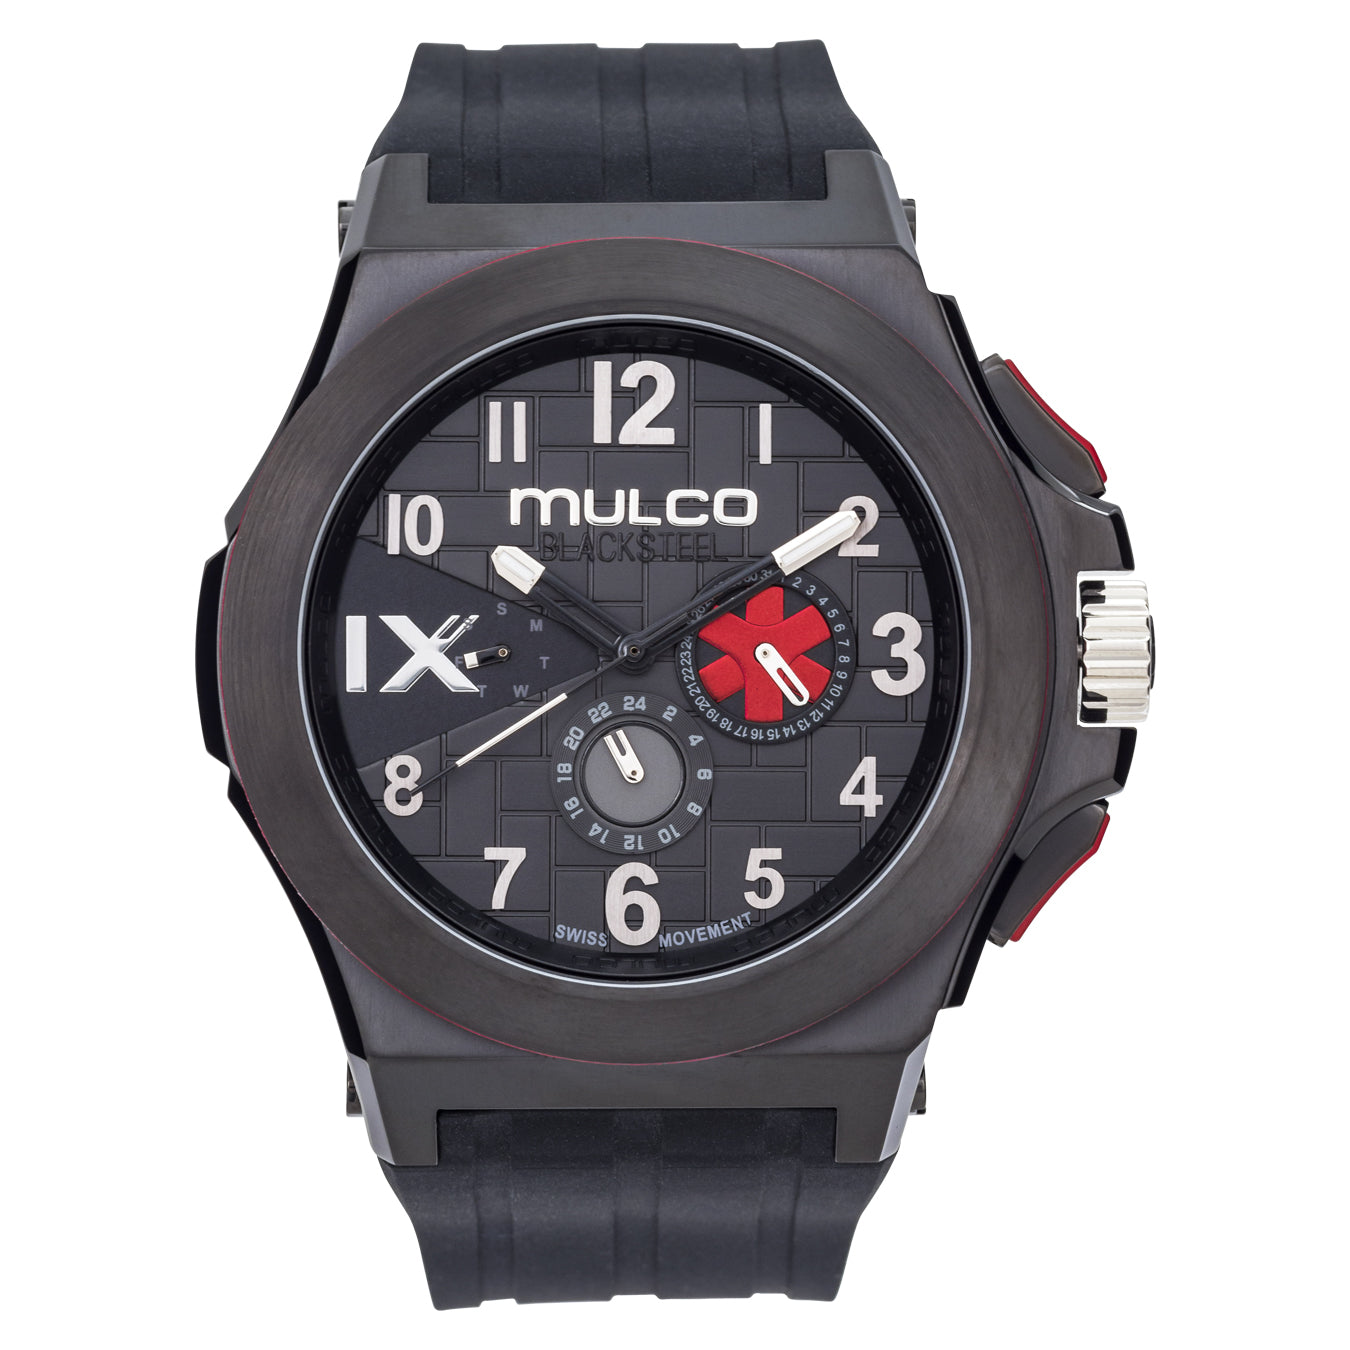 Men Watches | Black Silicone Rubber Band | Silver accents | Water Resistant